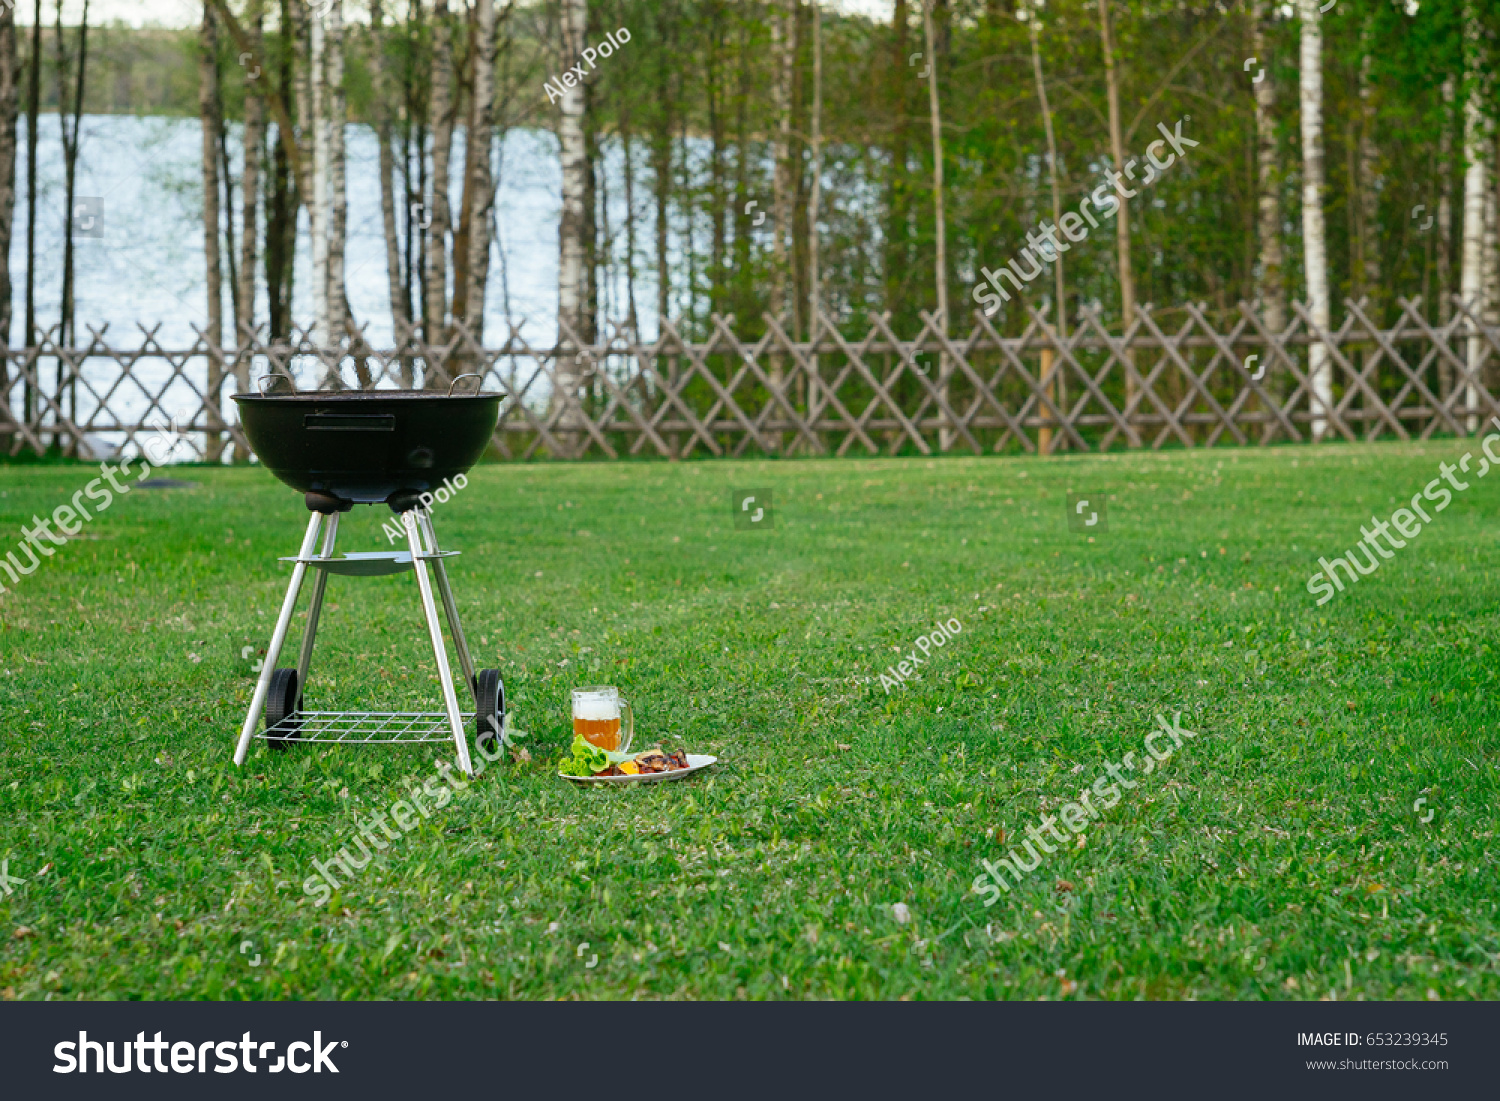 barbecue grill beer grilled vegetables front stock photo 653239345